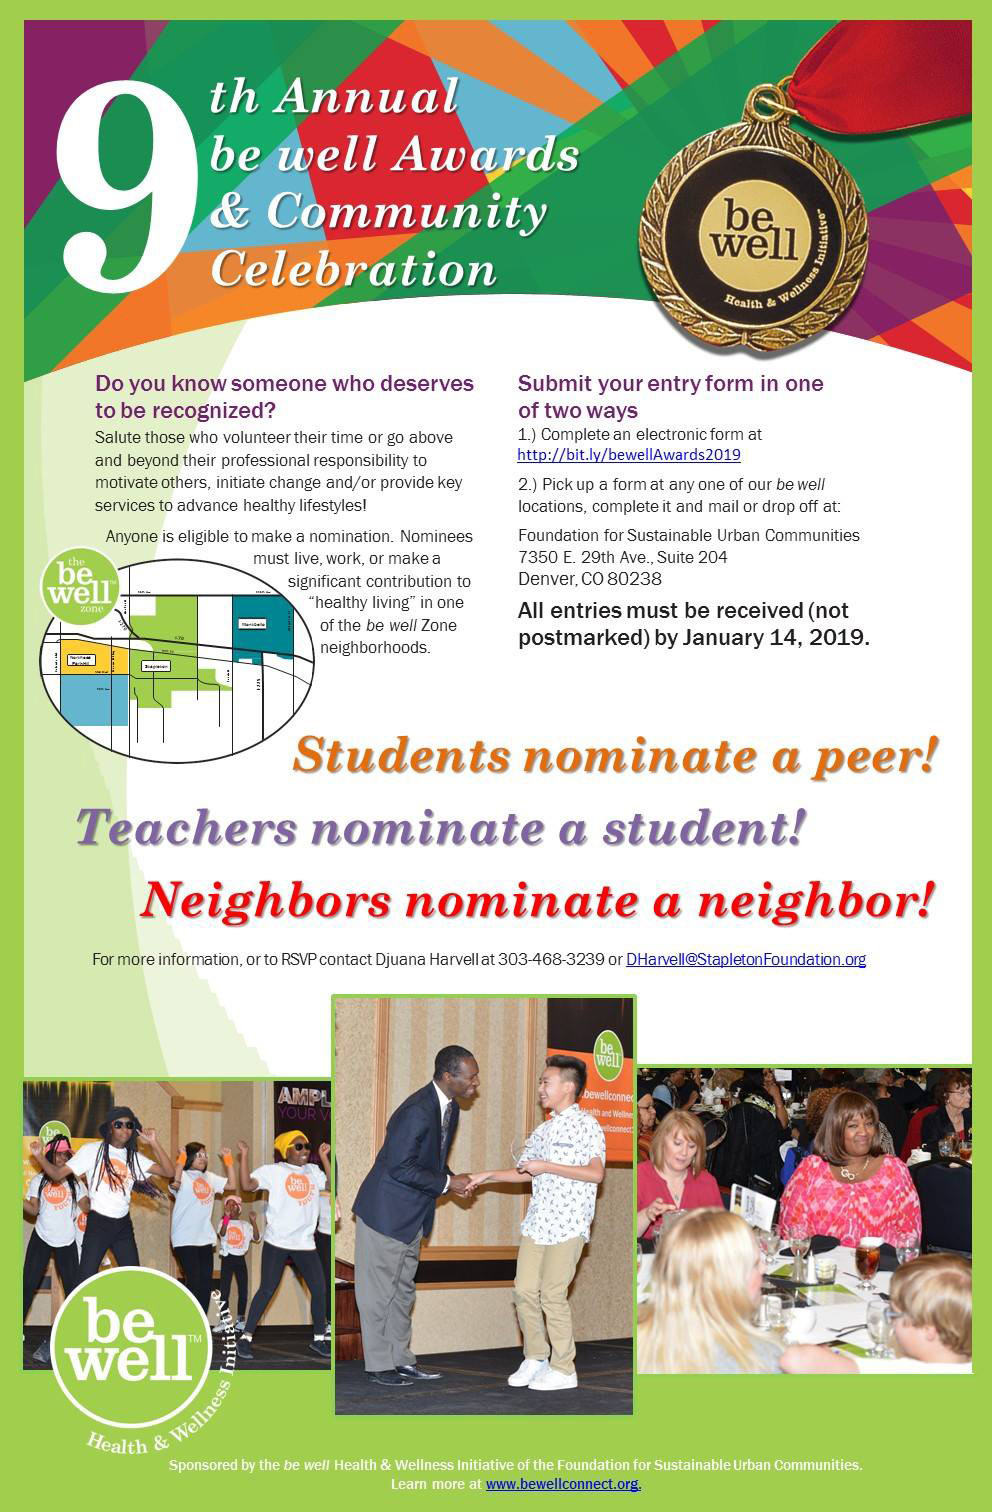 9th Annual be well Awards